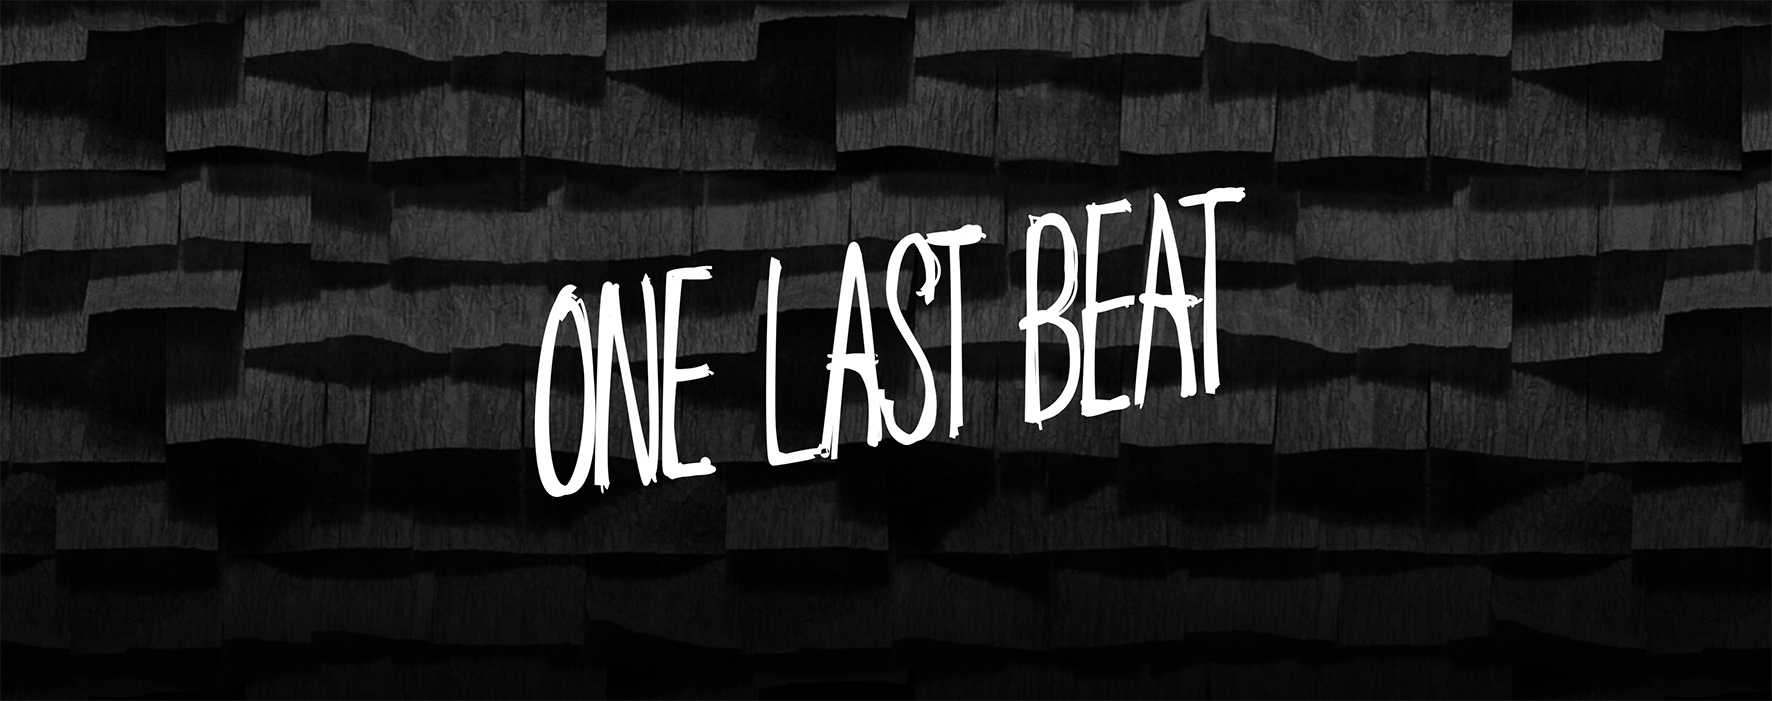 One Last Beat - The Making of